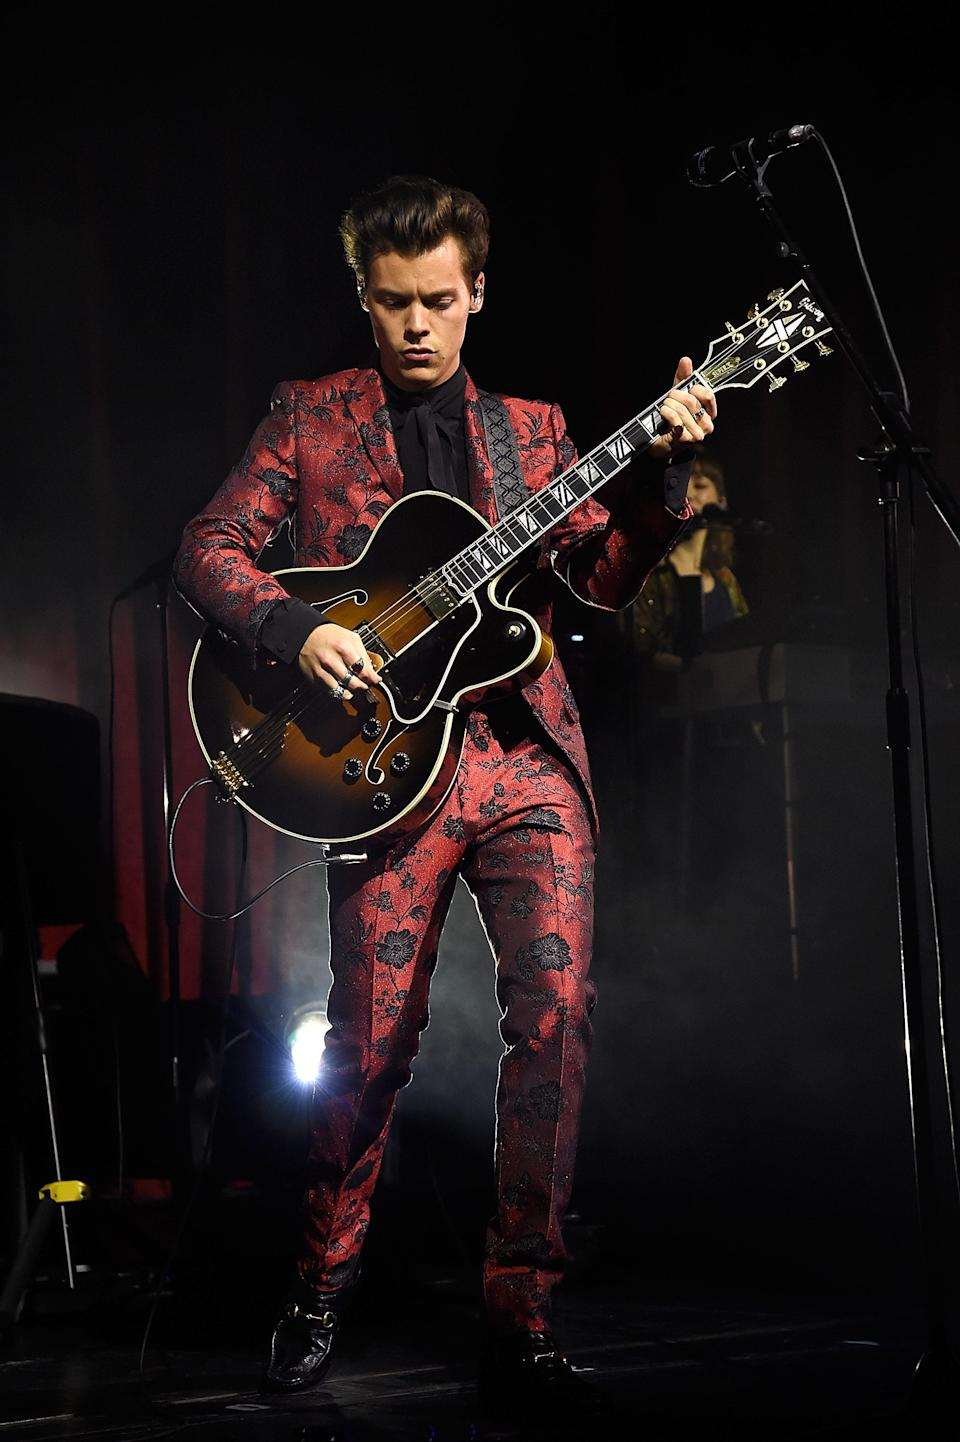 Harry Styles Live On Tour - New York